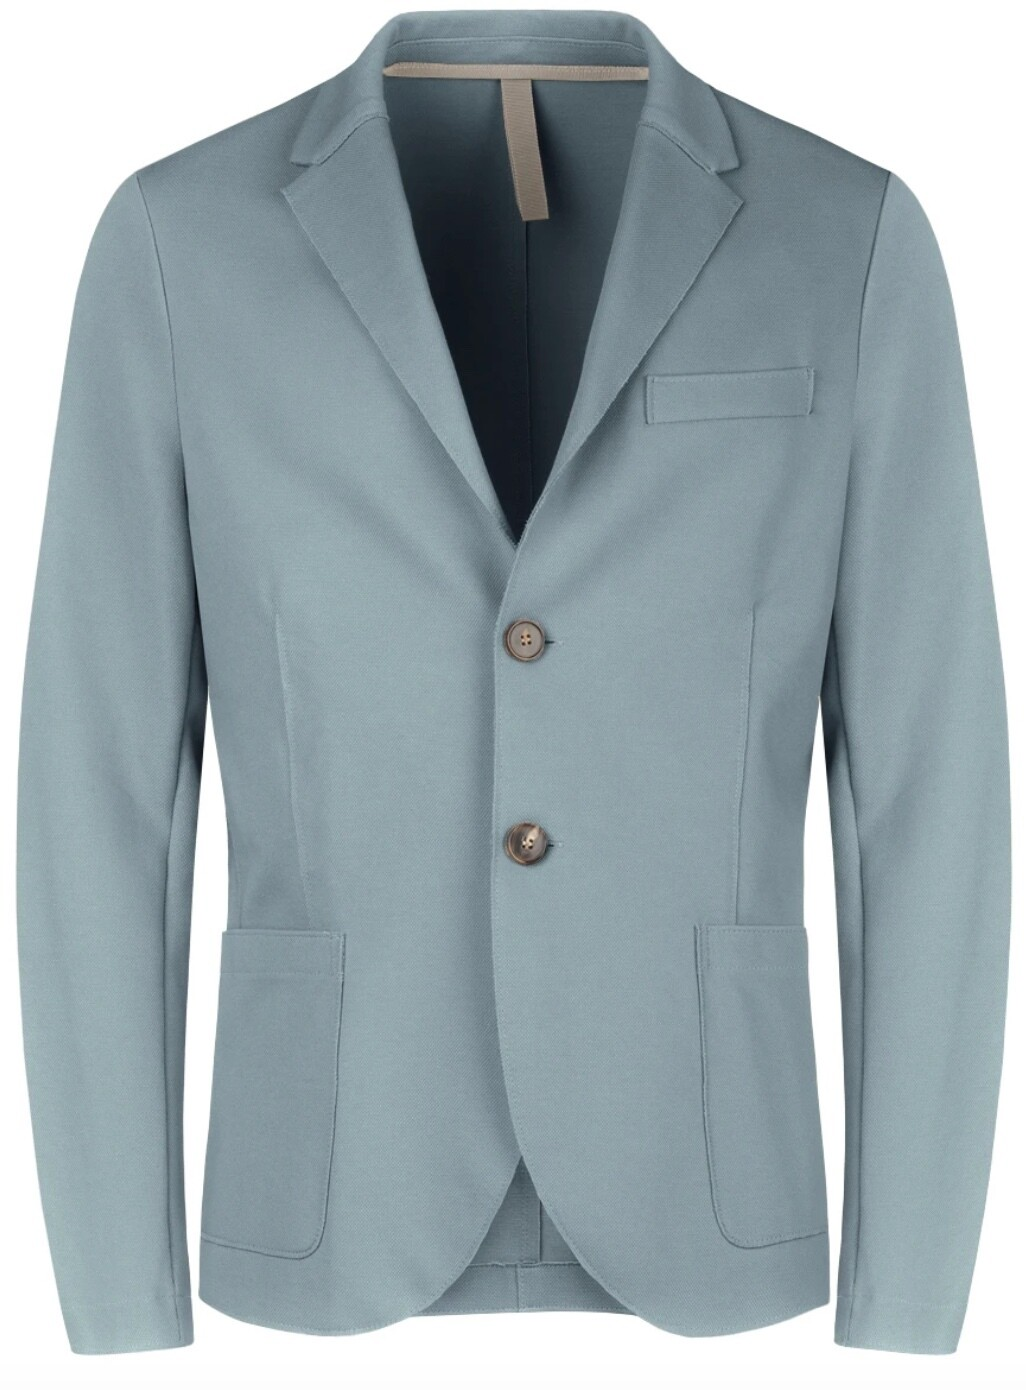 BLAZER HARRIS WHARF PIQUET STRETCH CIEL